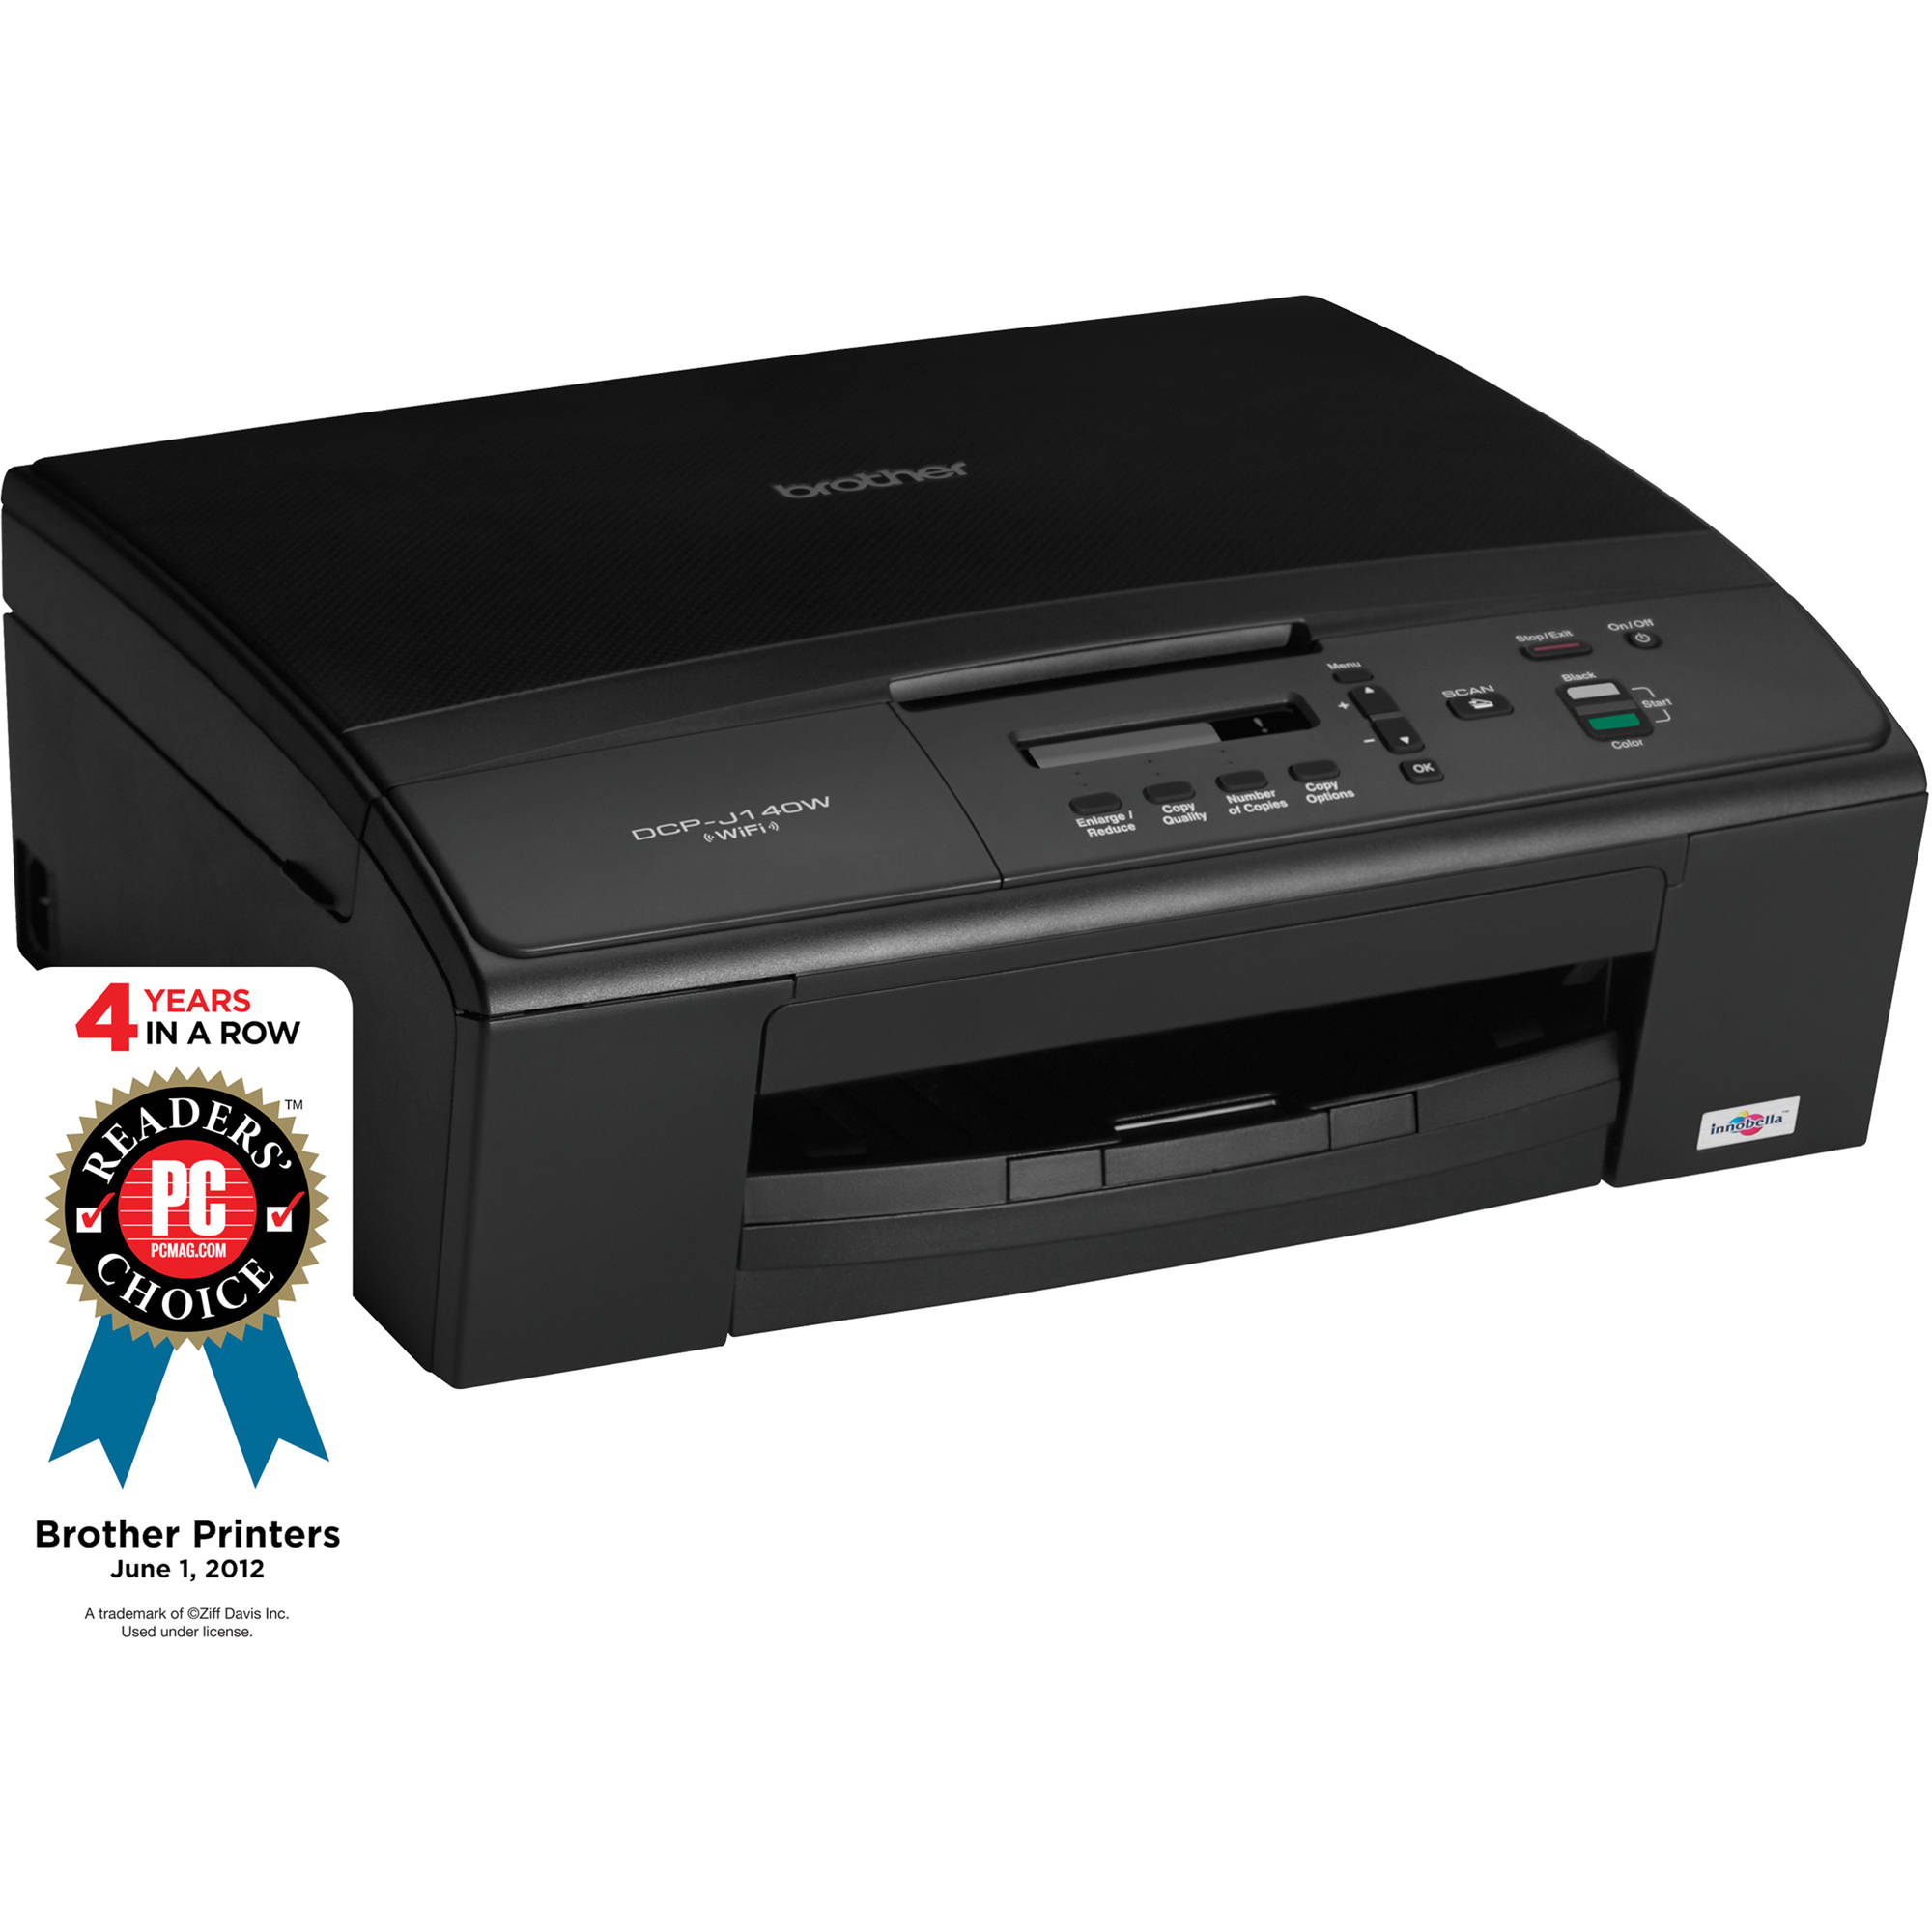 Brother DCP-J140W Wireless Color All-in-One Inkjet Printer